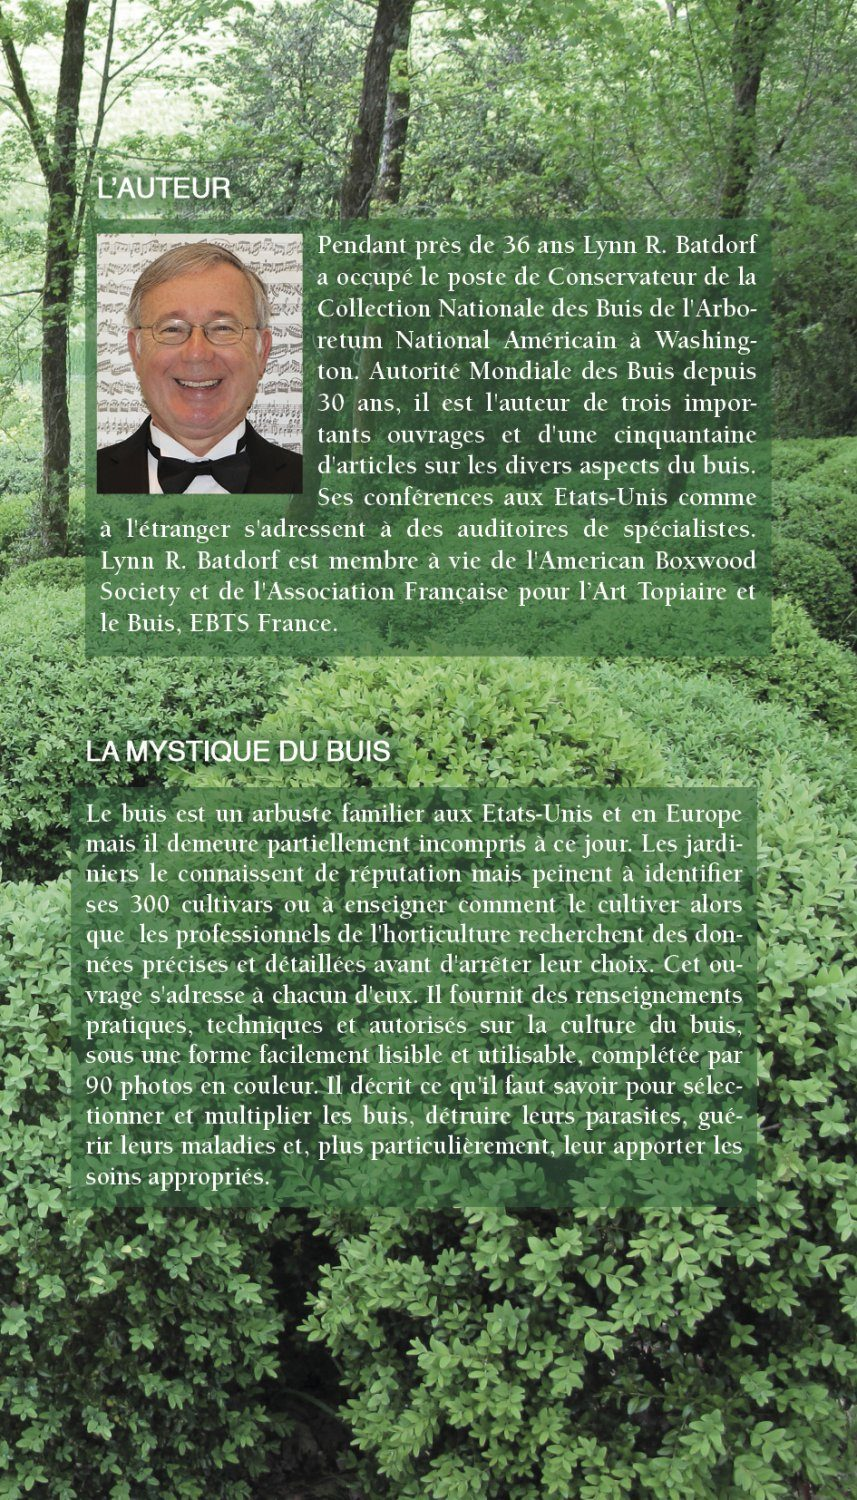 Le Manuel Du Buis – New – The Boxwood Manual in French (4th Edition)